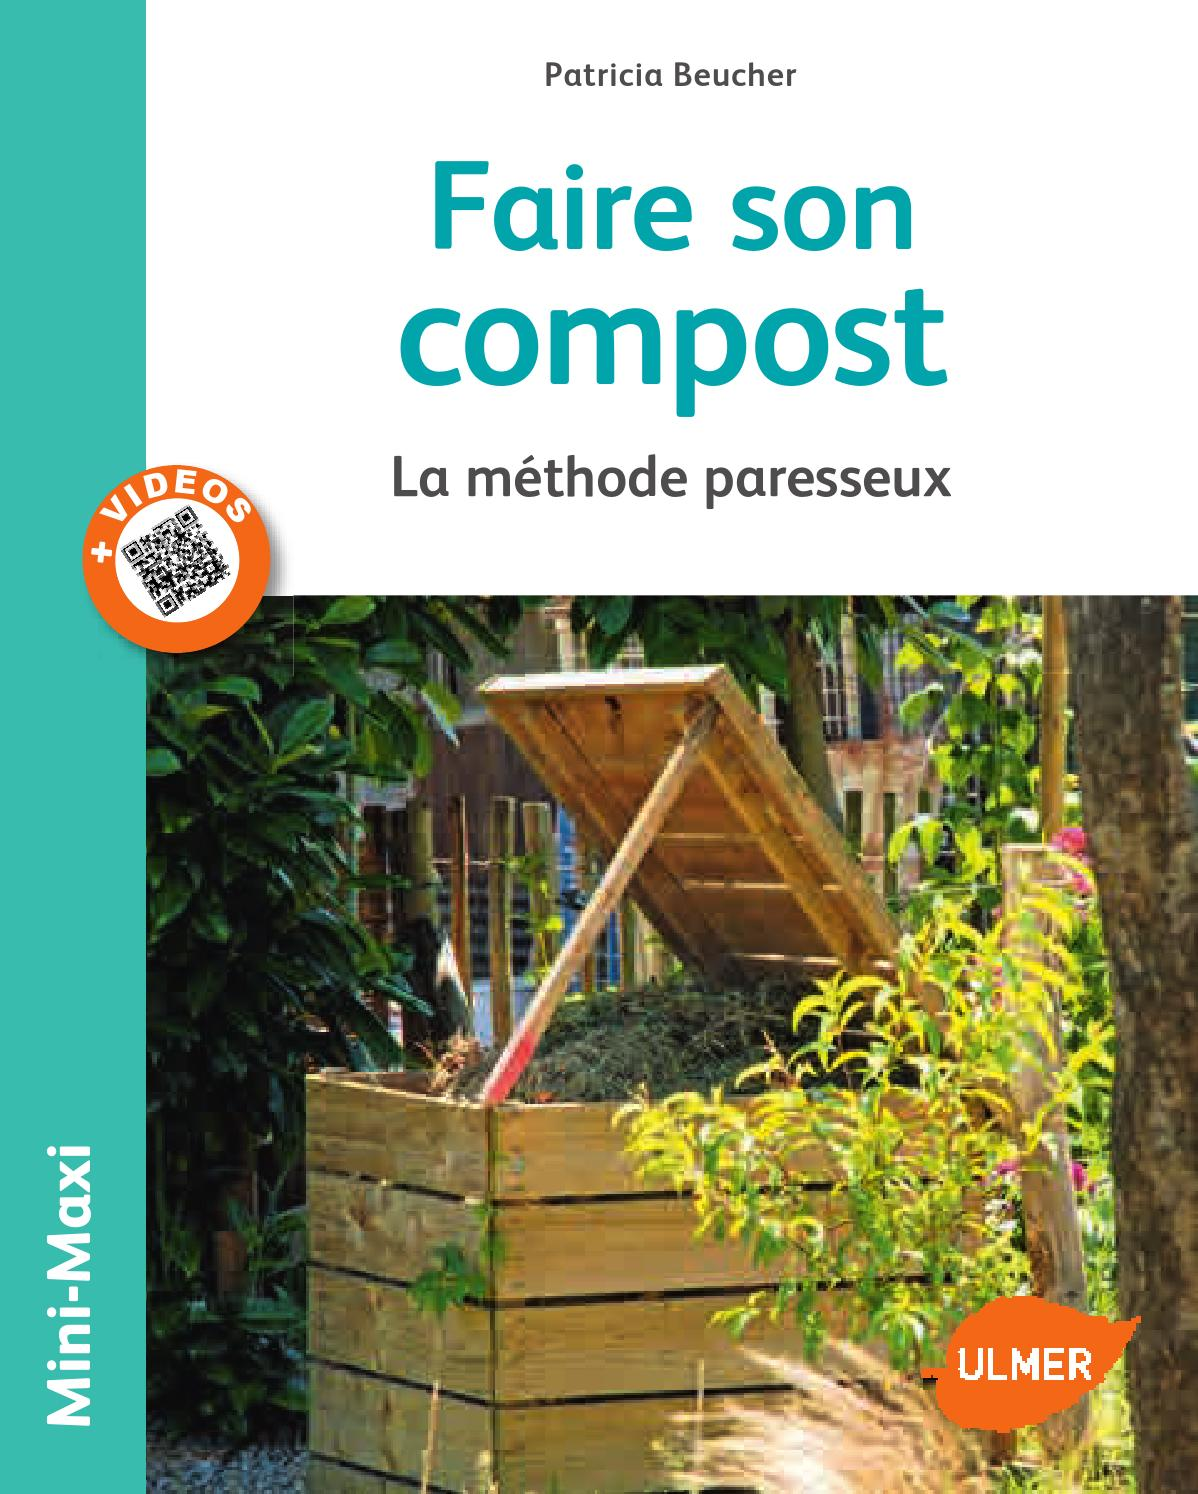 Extrait faire son compost ditions ulmer by ditions - Faire son purin d ortie ...